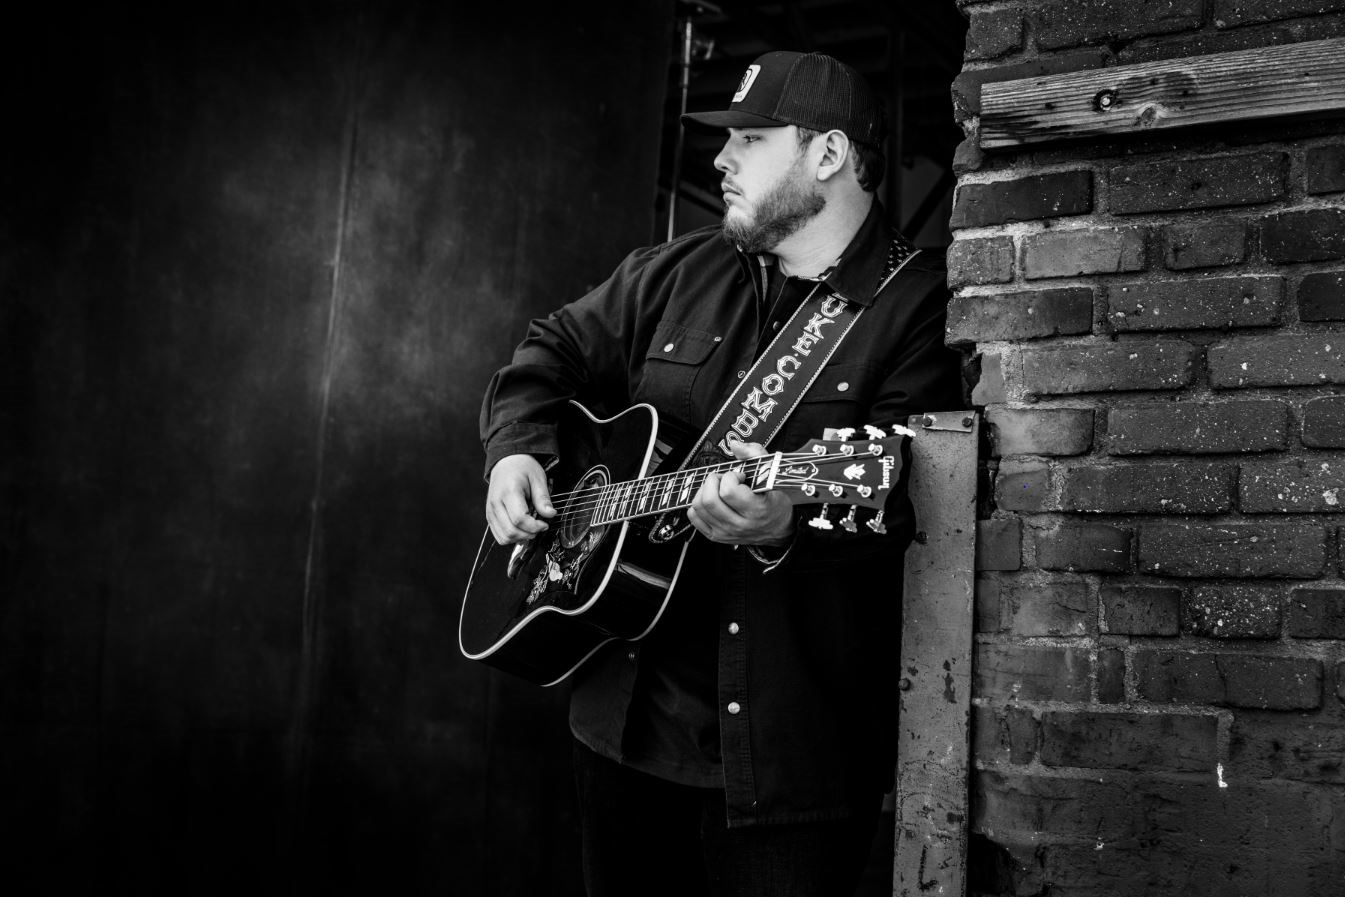 Luke Combs Reveals Plans For Five Song The Prequel Ep Sounds Like Nashville